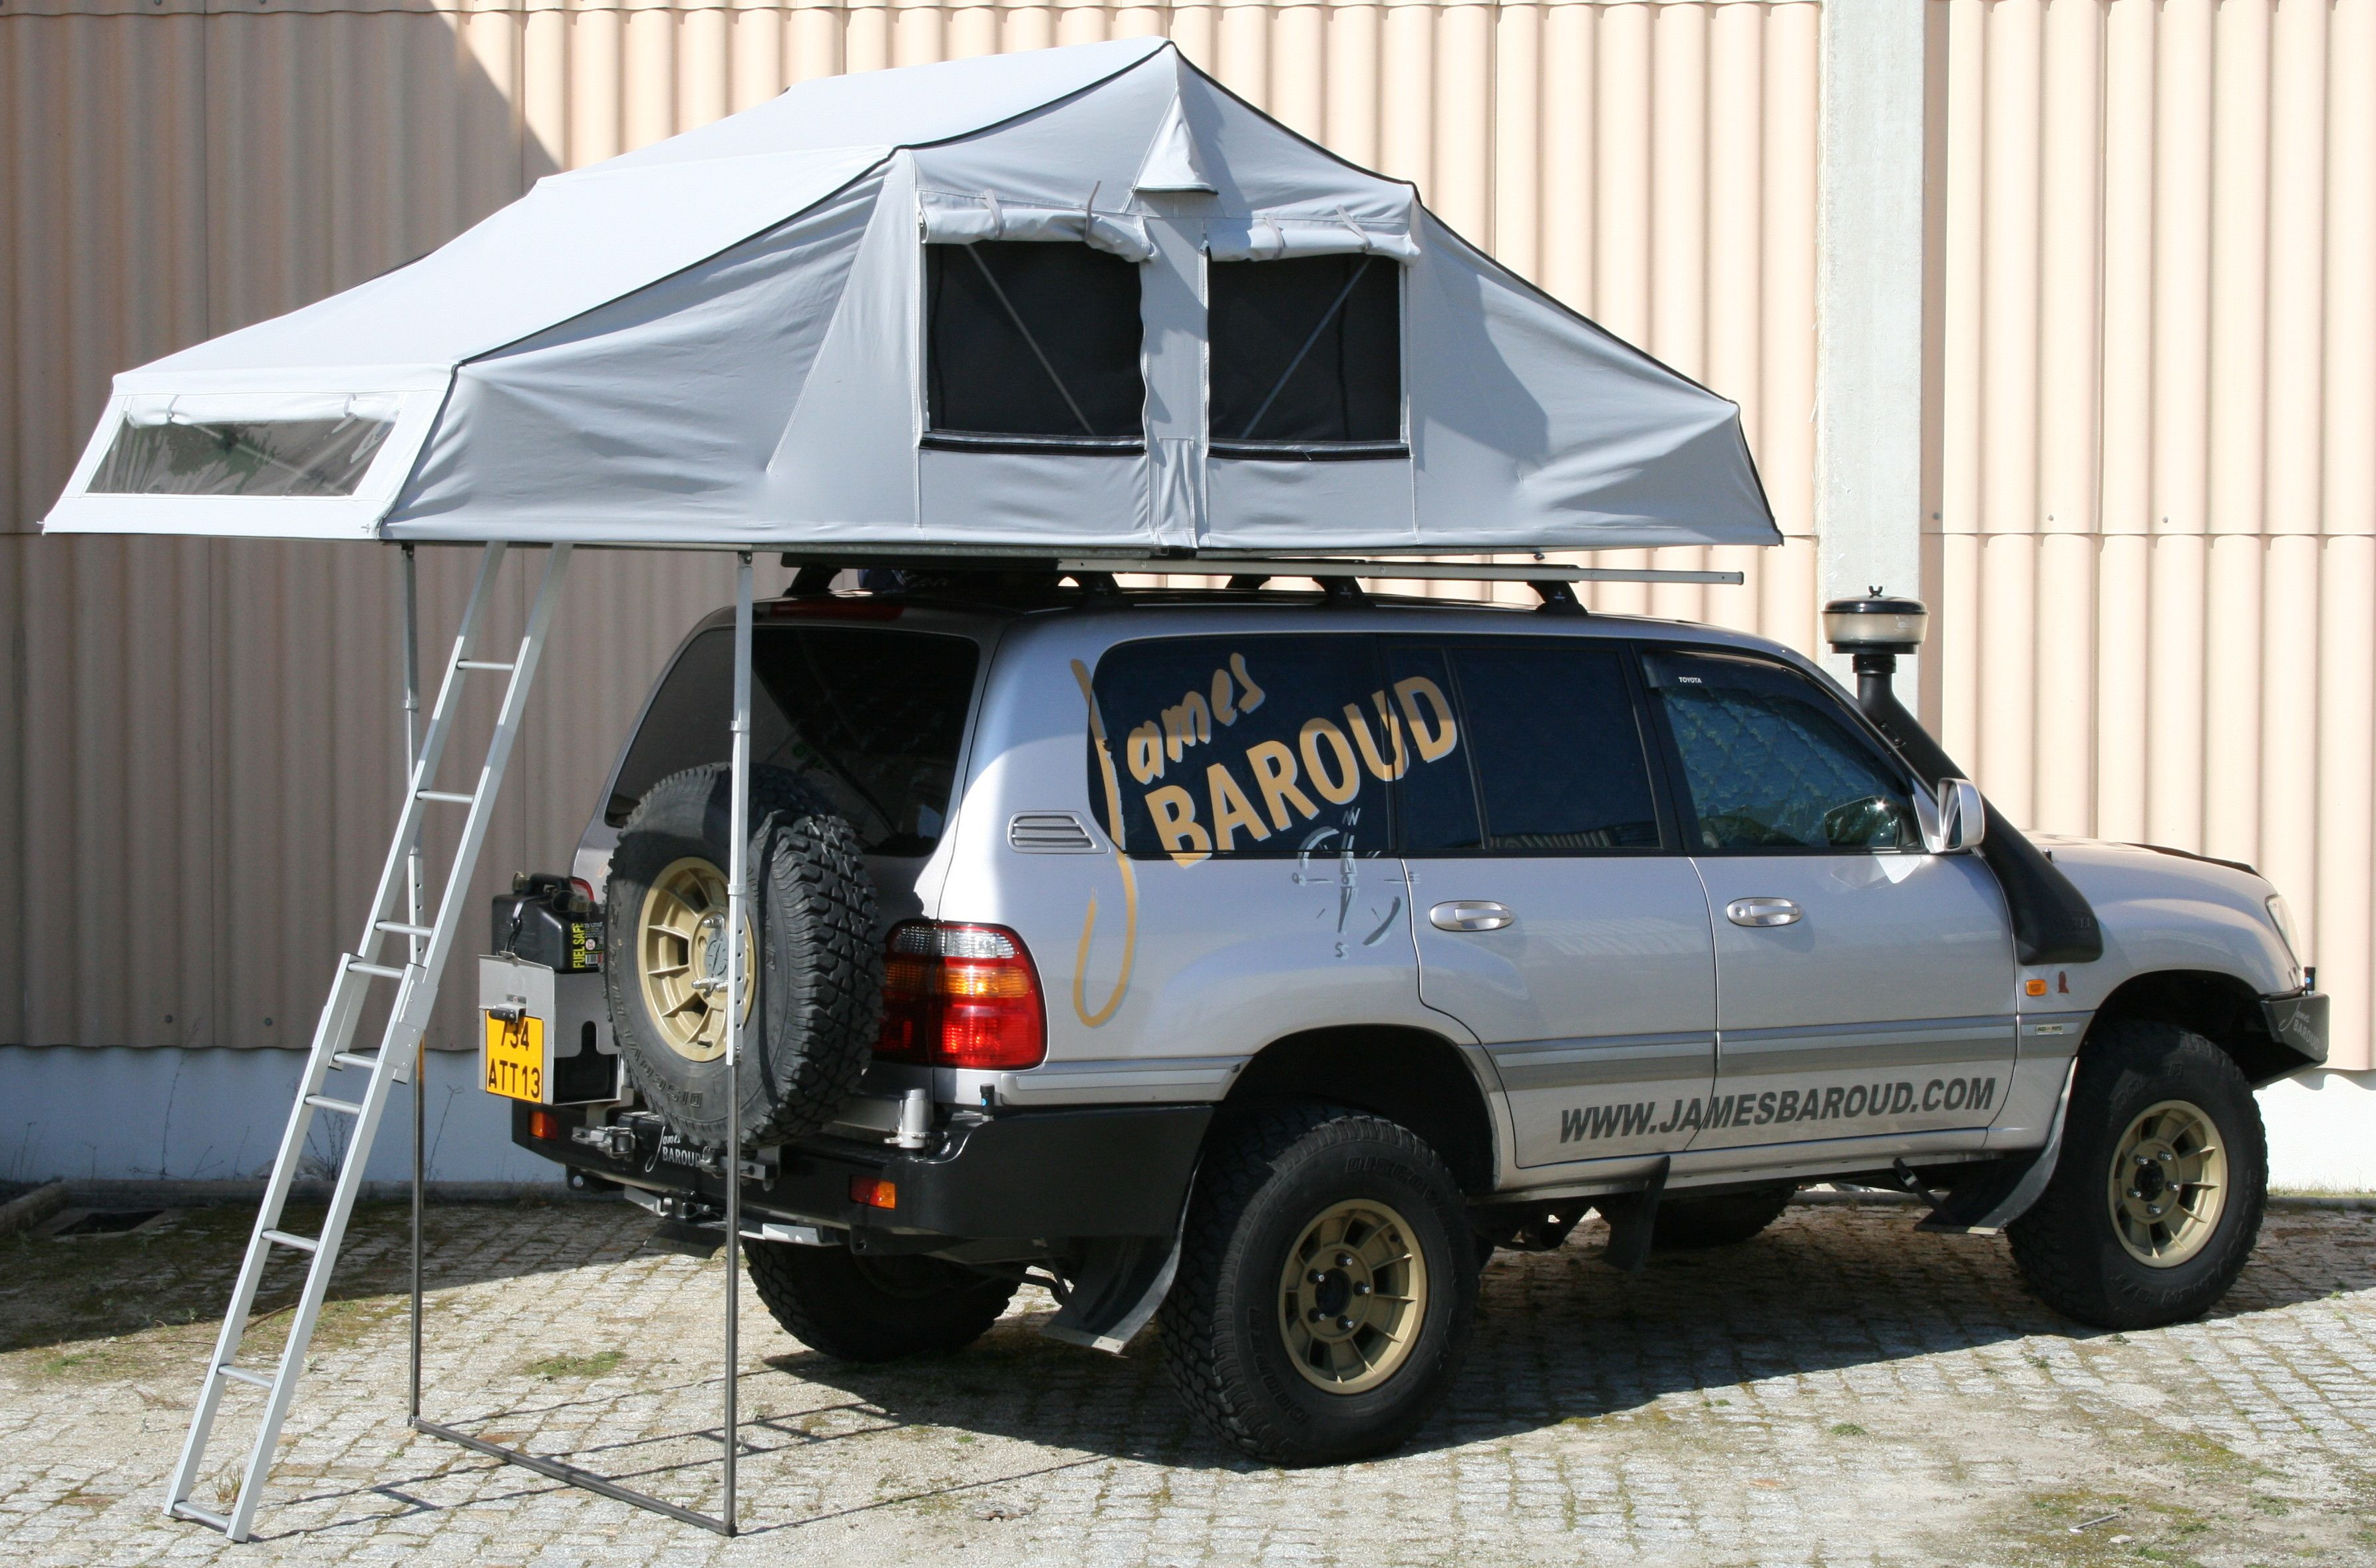 Scf Tub Racks Are Designed To Fit All Makes Models Of 4x4 Tubs Design Features Fully Adjustable To Fit Almost All Mo Truck Roof Rack Roof Top Tent Top Tents